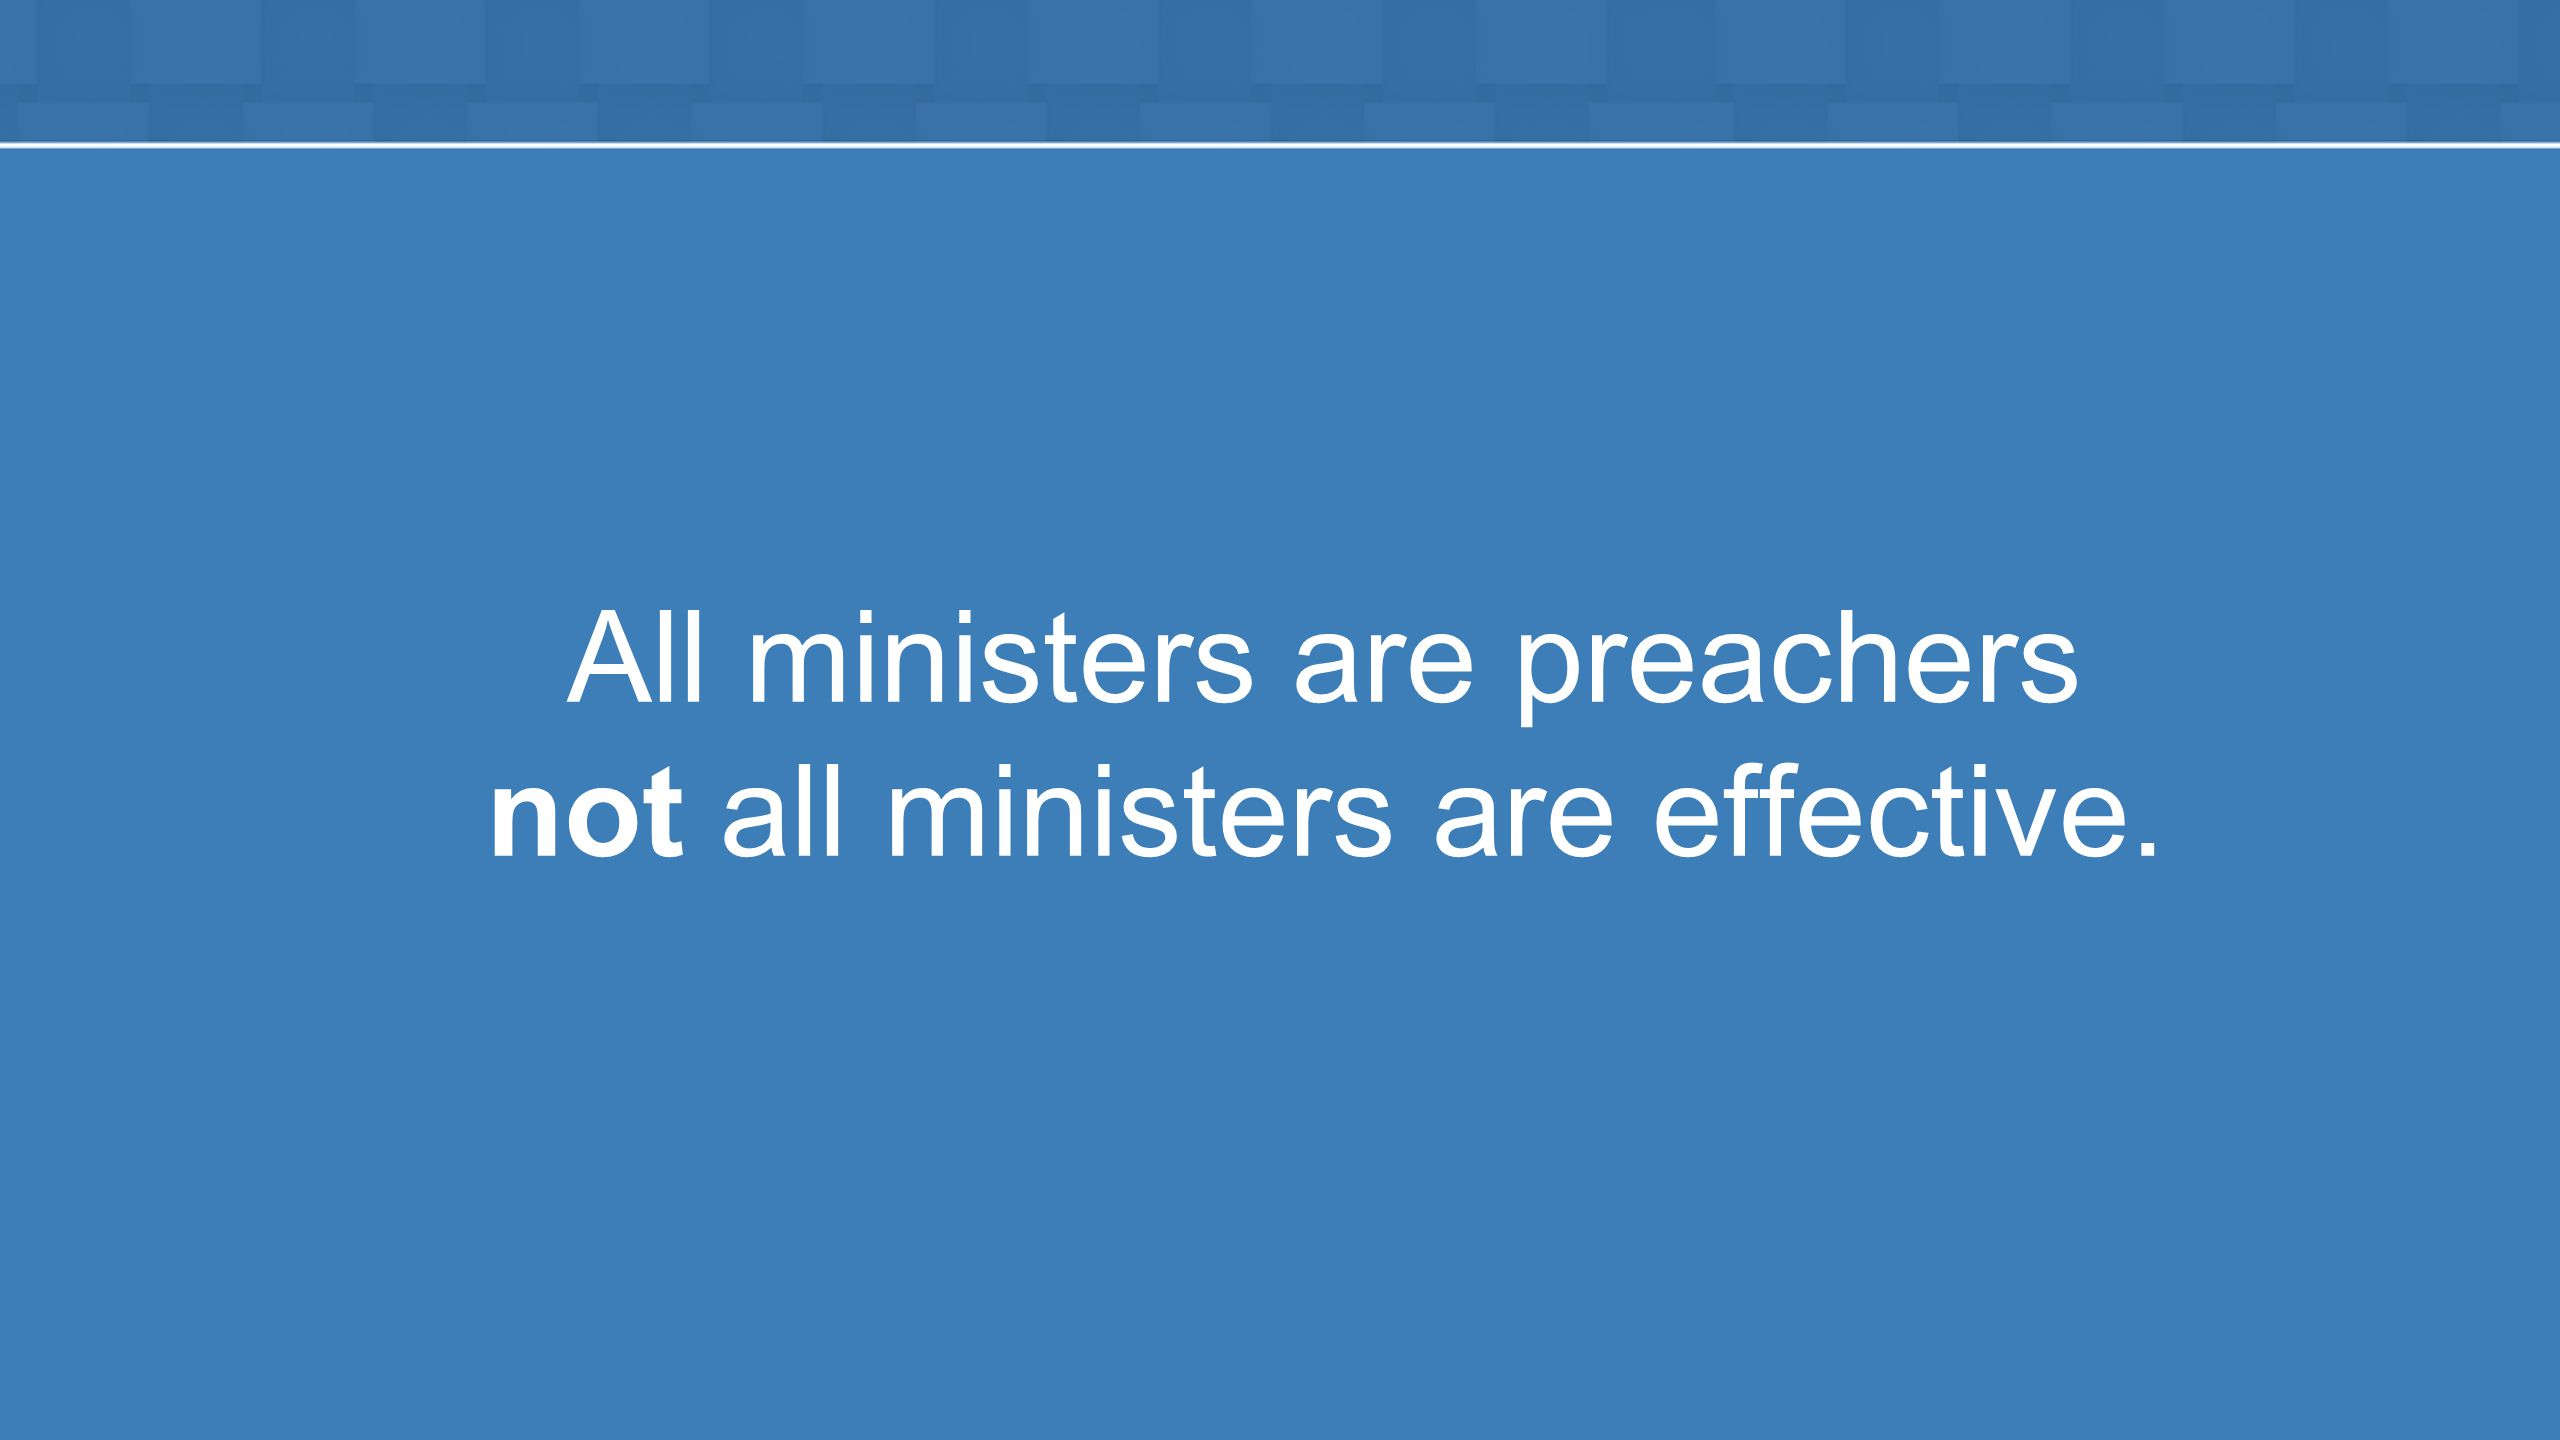 All ministers are preachers not all ministers are effective.